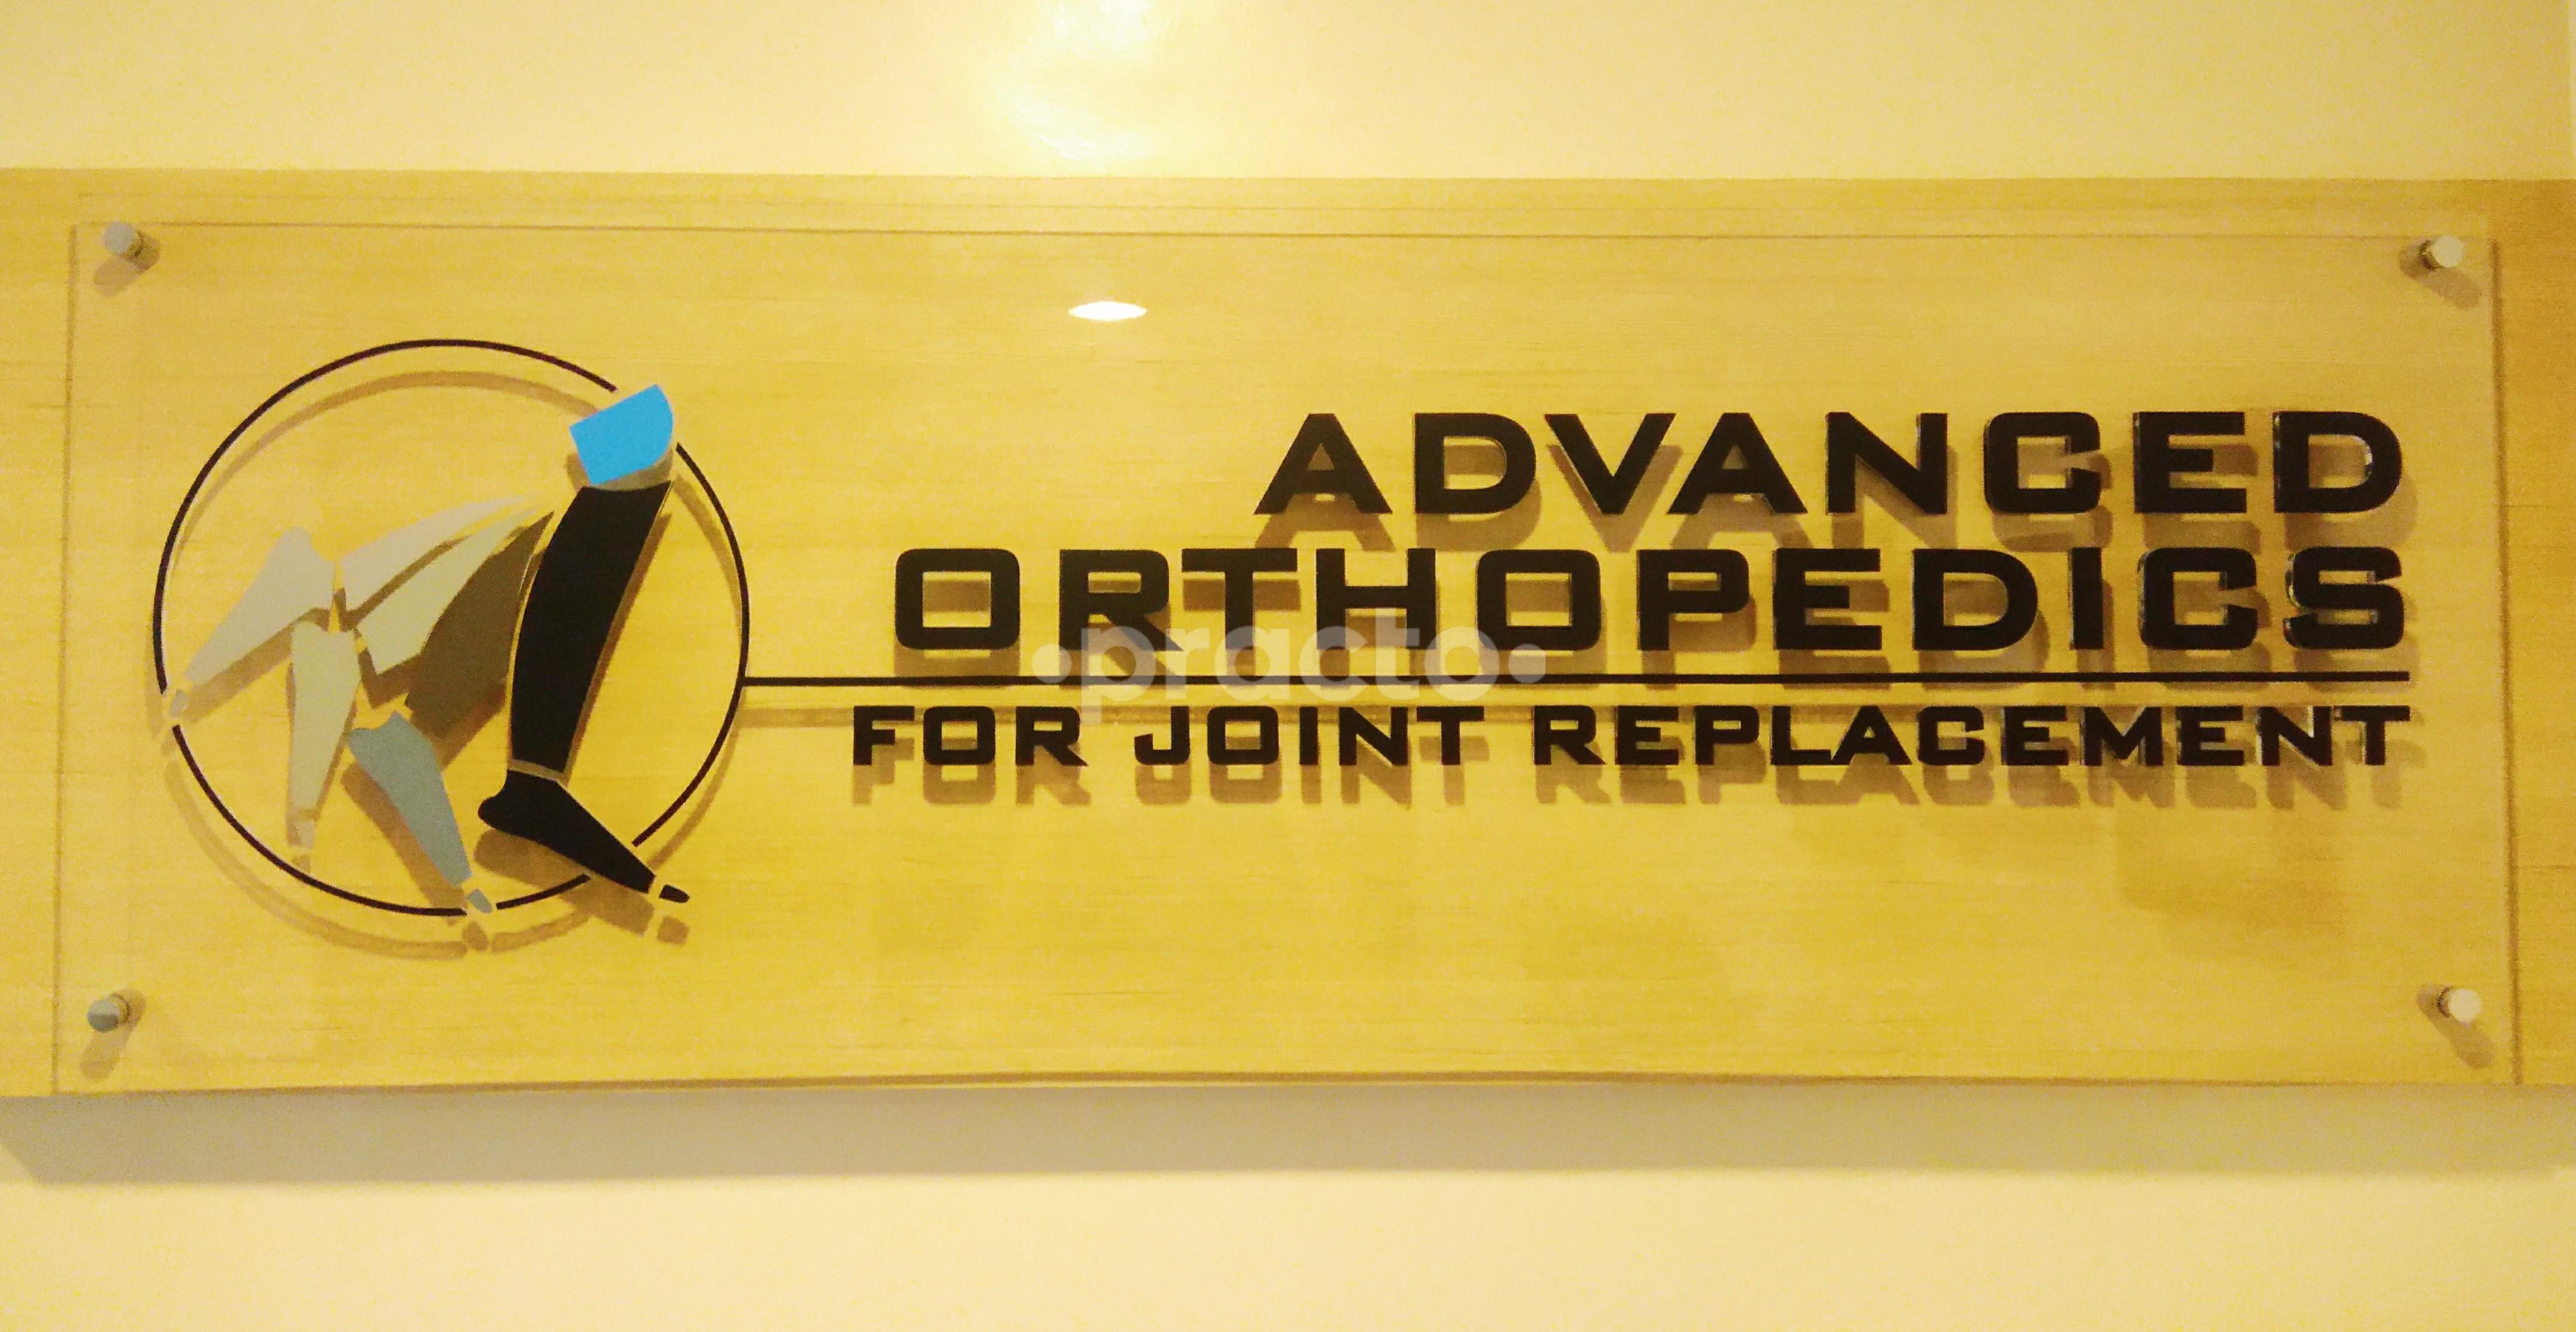 Best Clinics in San Juan - Book Appointment, View Reviews